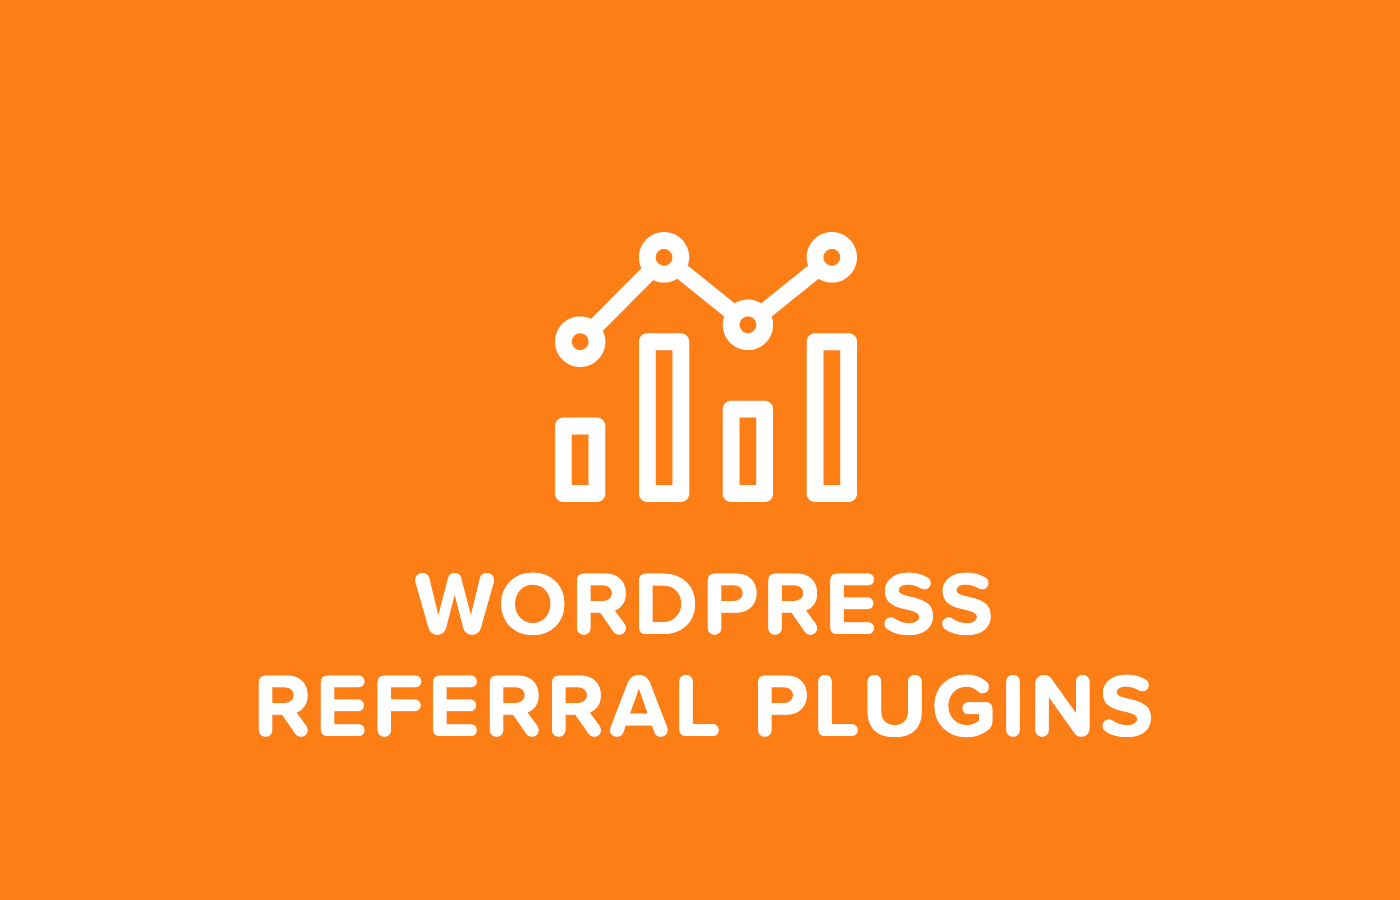 Top 5 WordPress Referral Plugins For Your Website